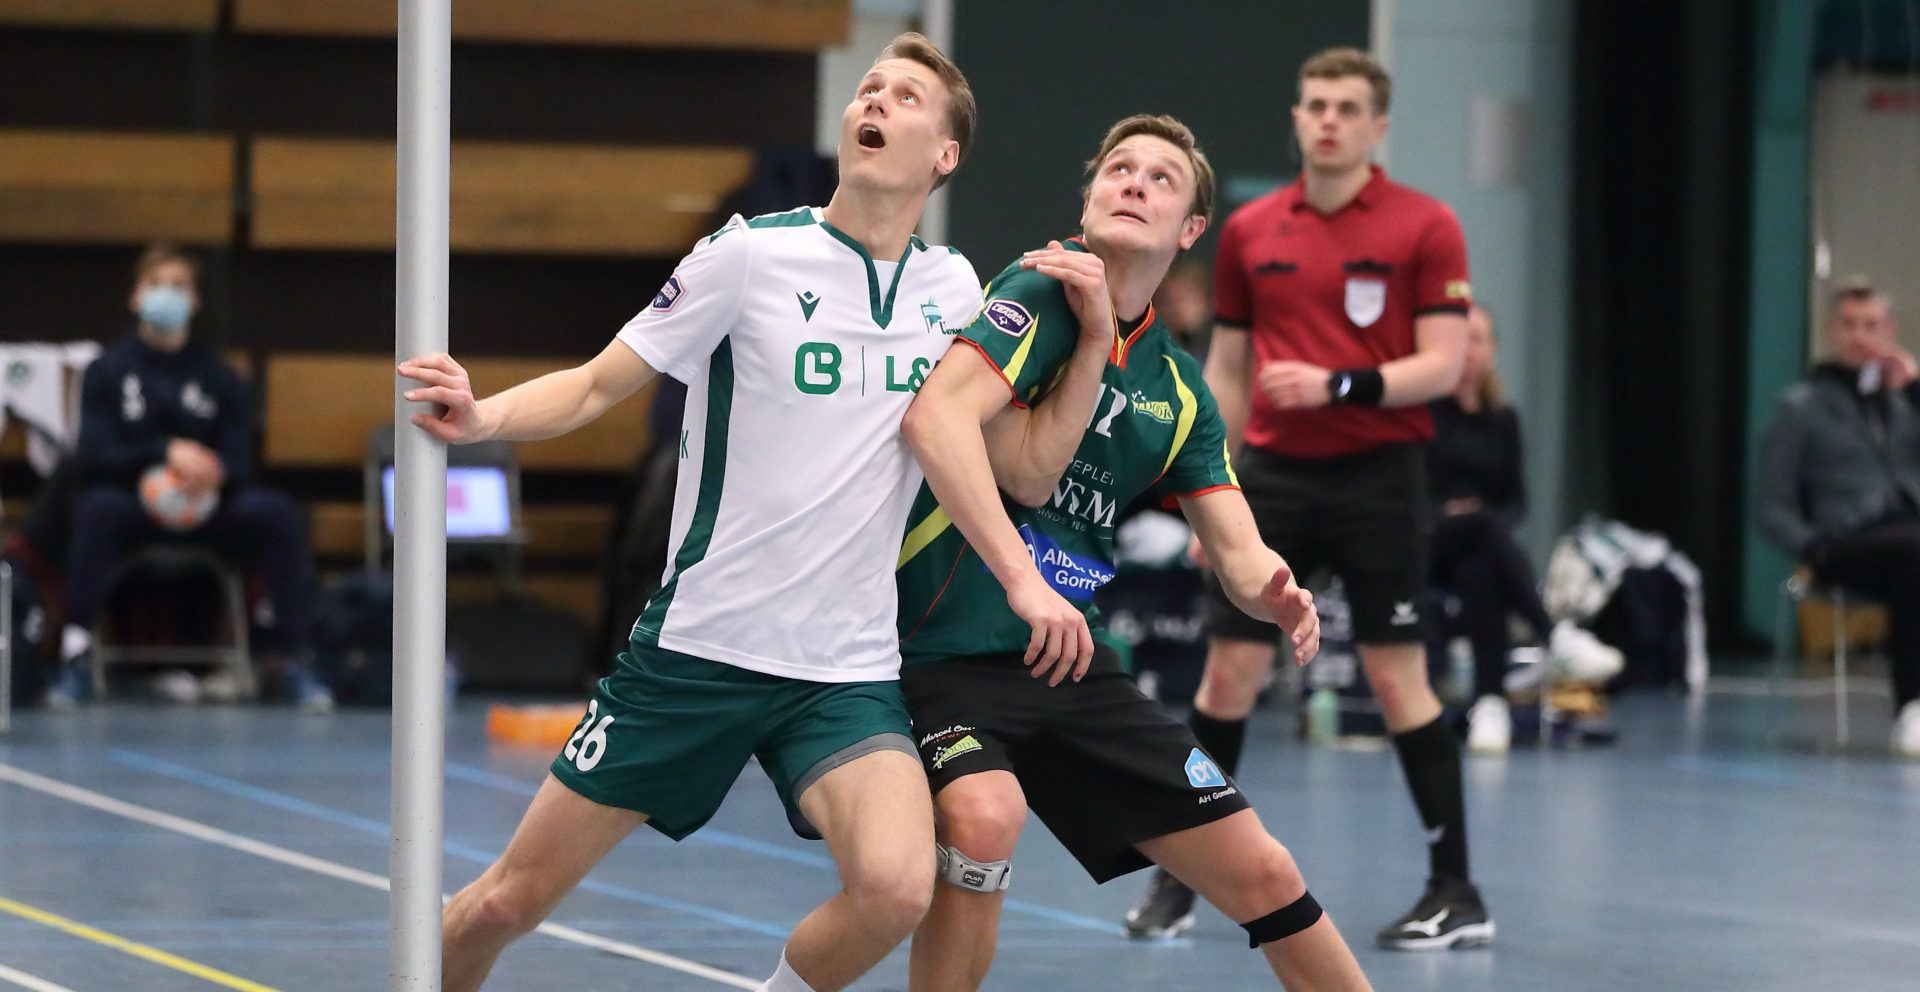 Korfbal League in de media #5